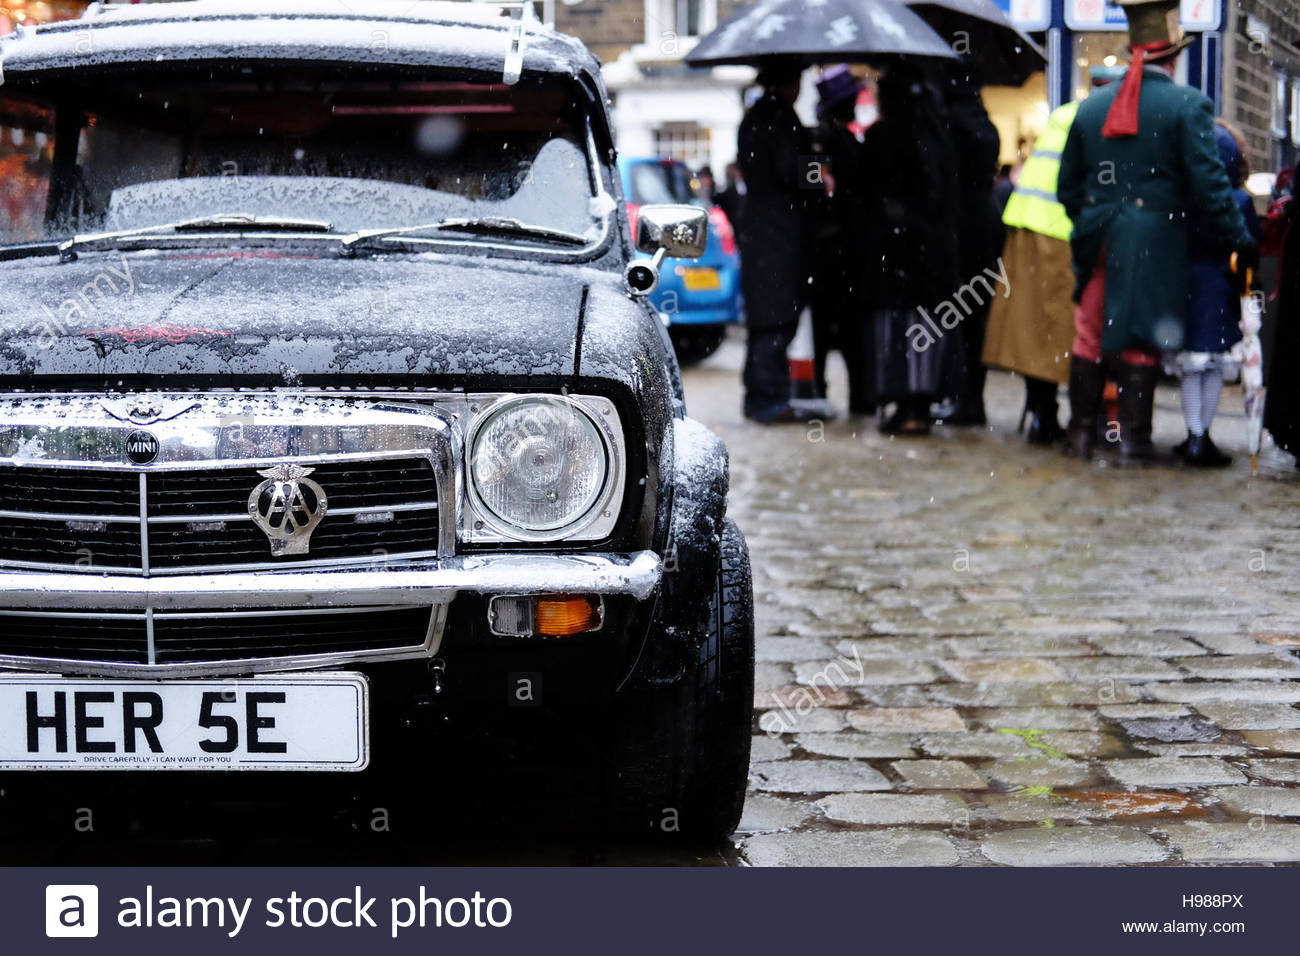 A black mini converted into a hearse, with an AA badge, at a steampunk festival. - Stock Image